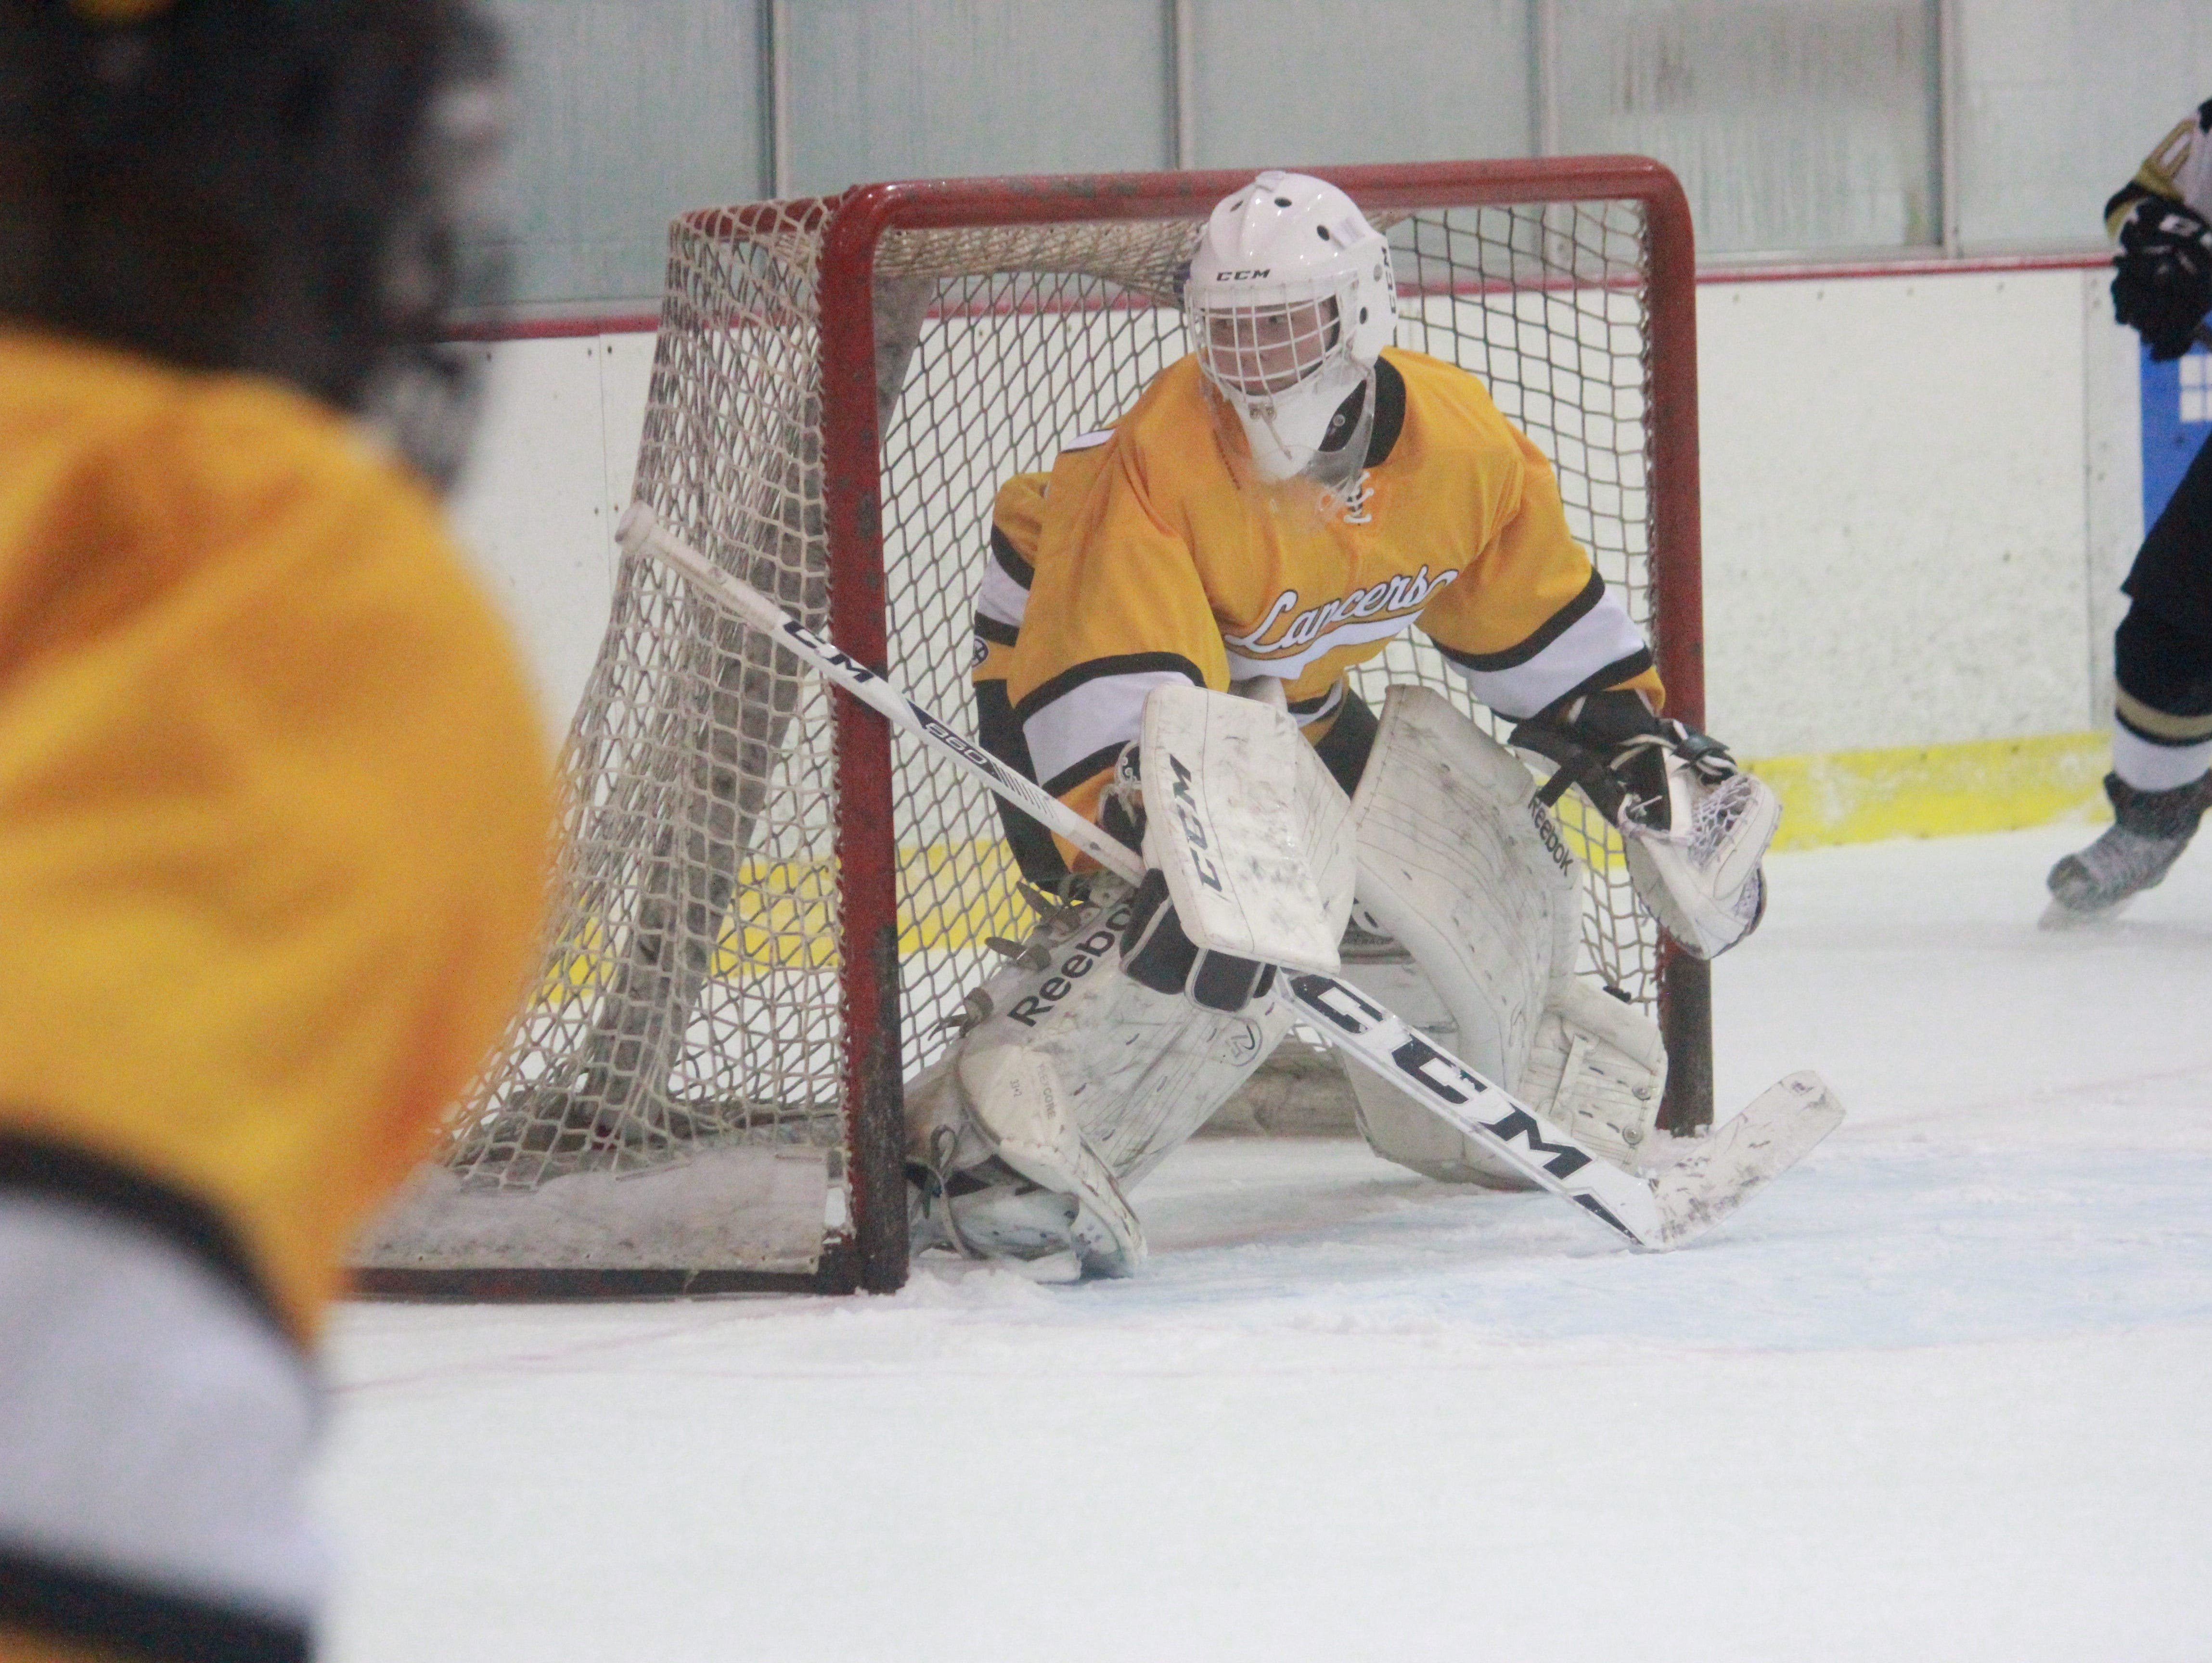 St. John Vianney goalie Jeremy Connor made 41 saves in a 3-2 win over Point Boro on Friday at the Ocean Ice Palace.